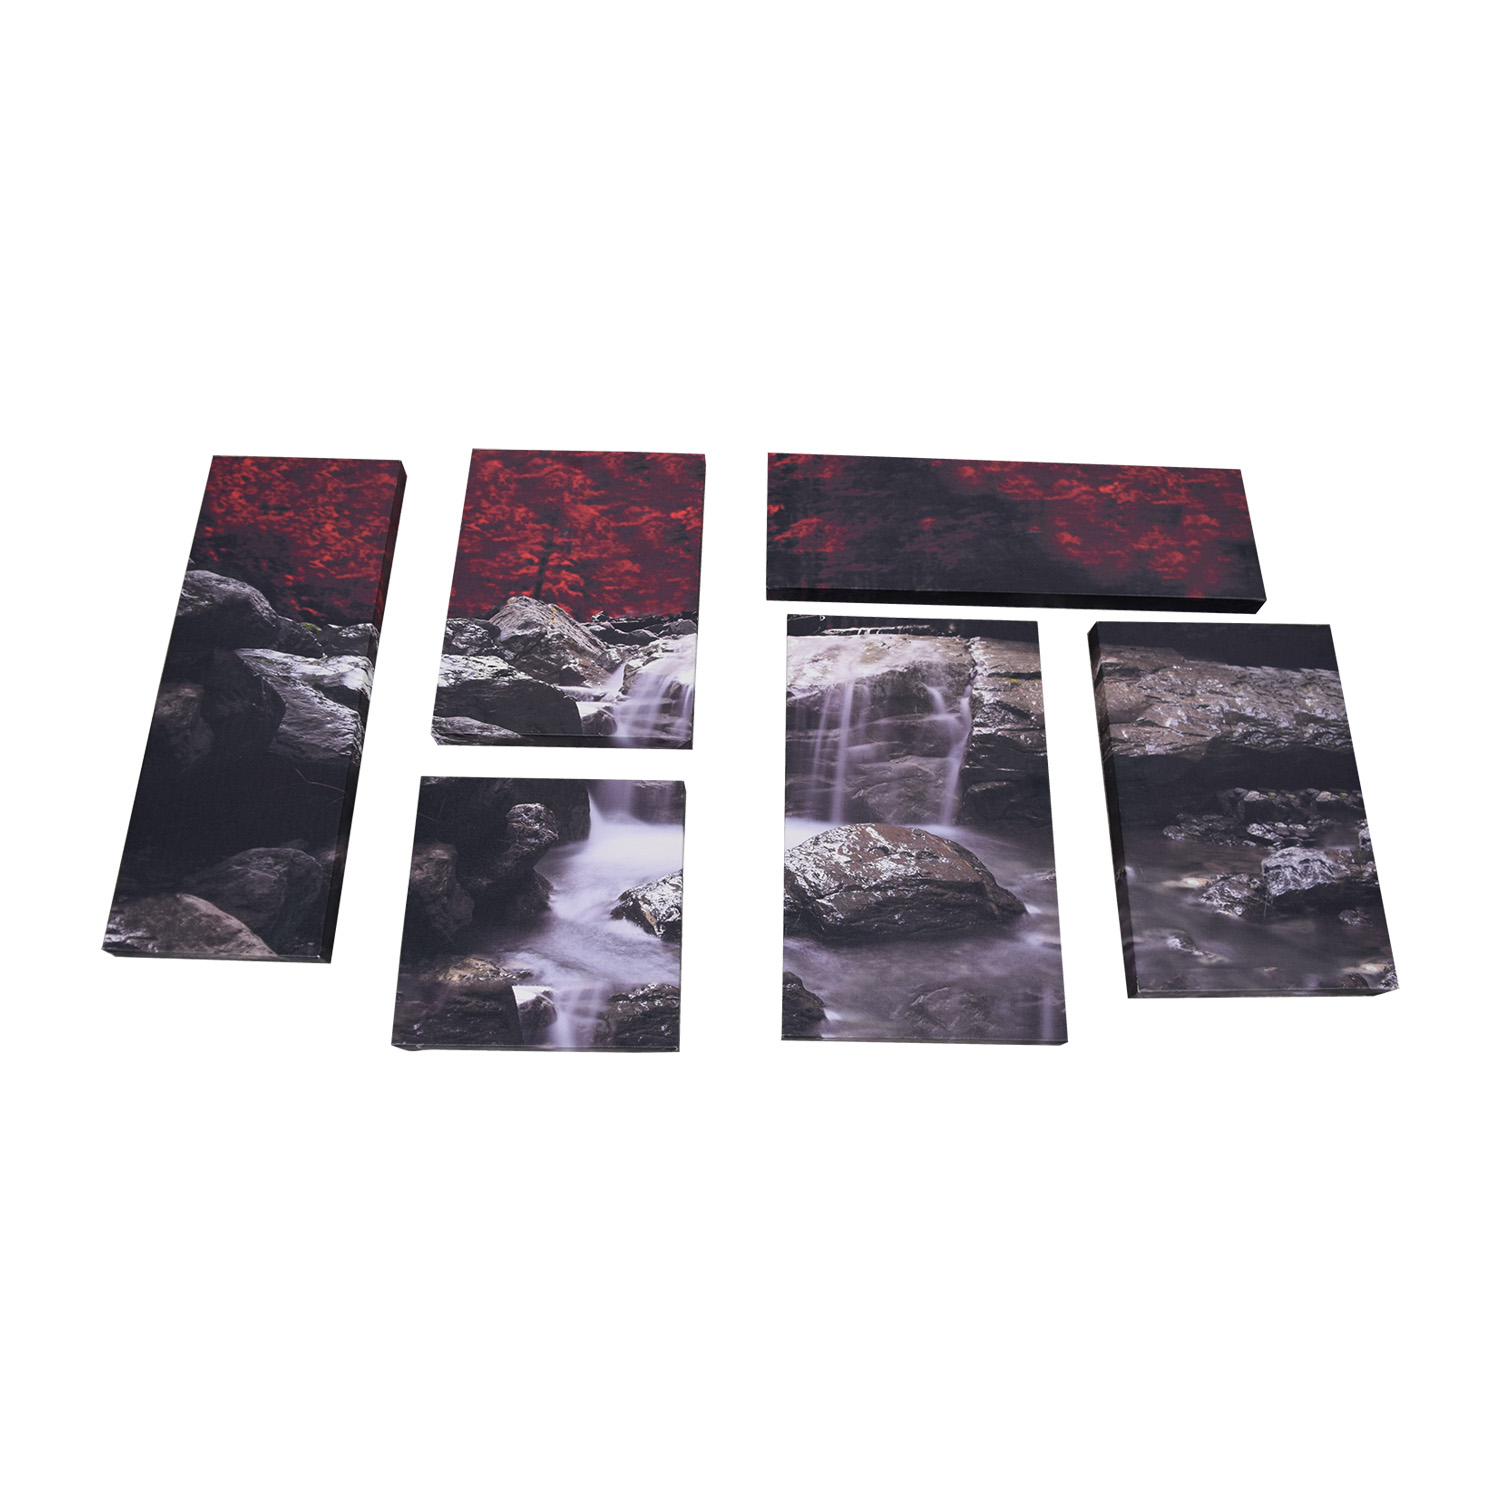 HomeGoods HomeGoods Red Black and Grey River and Rocks Painting discount